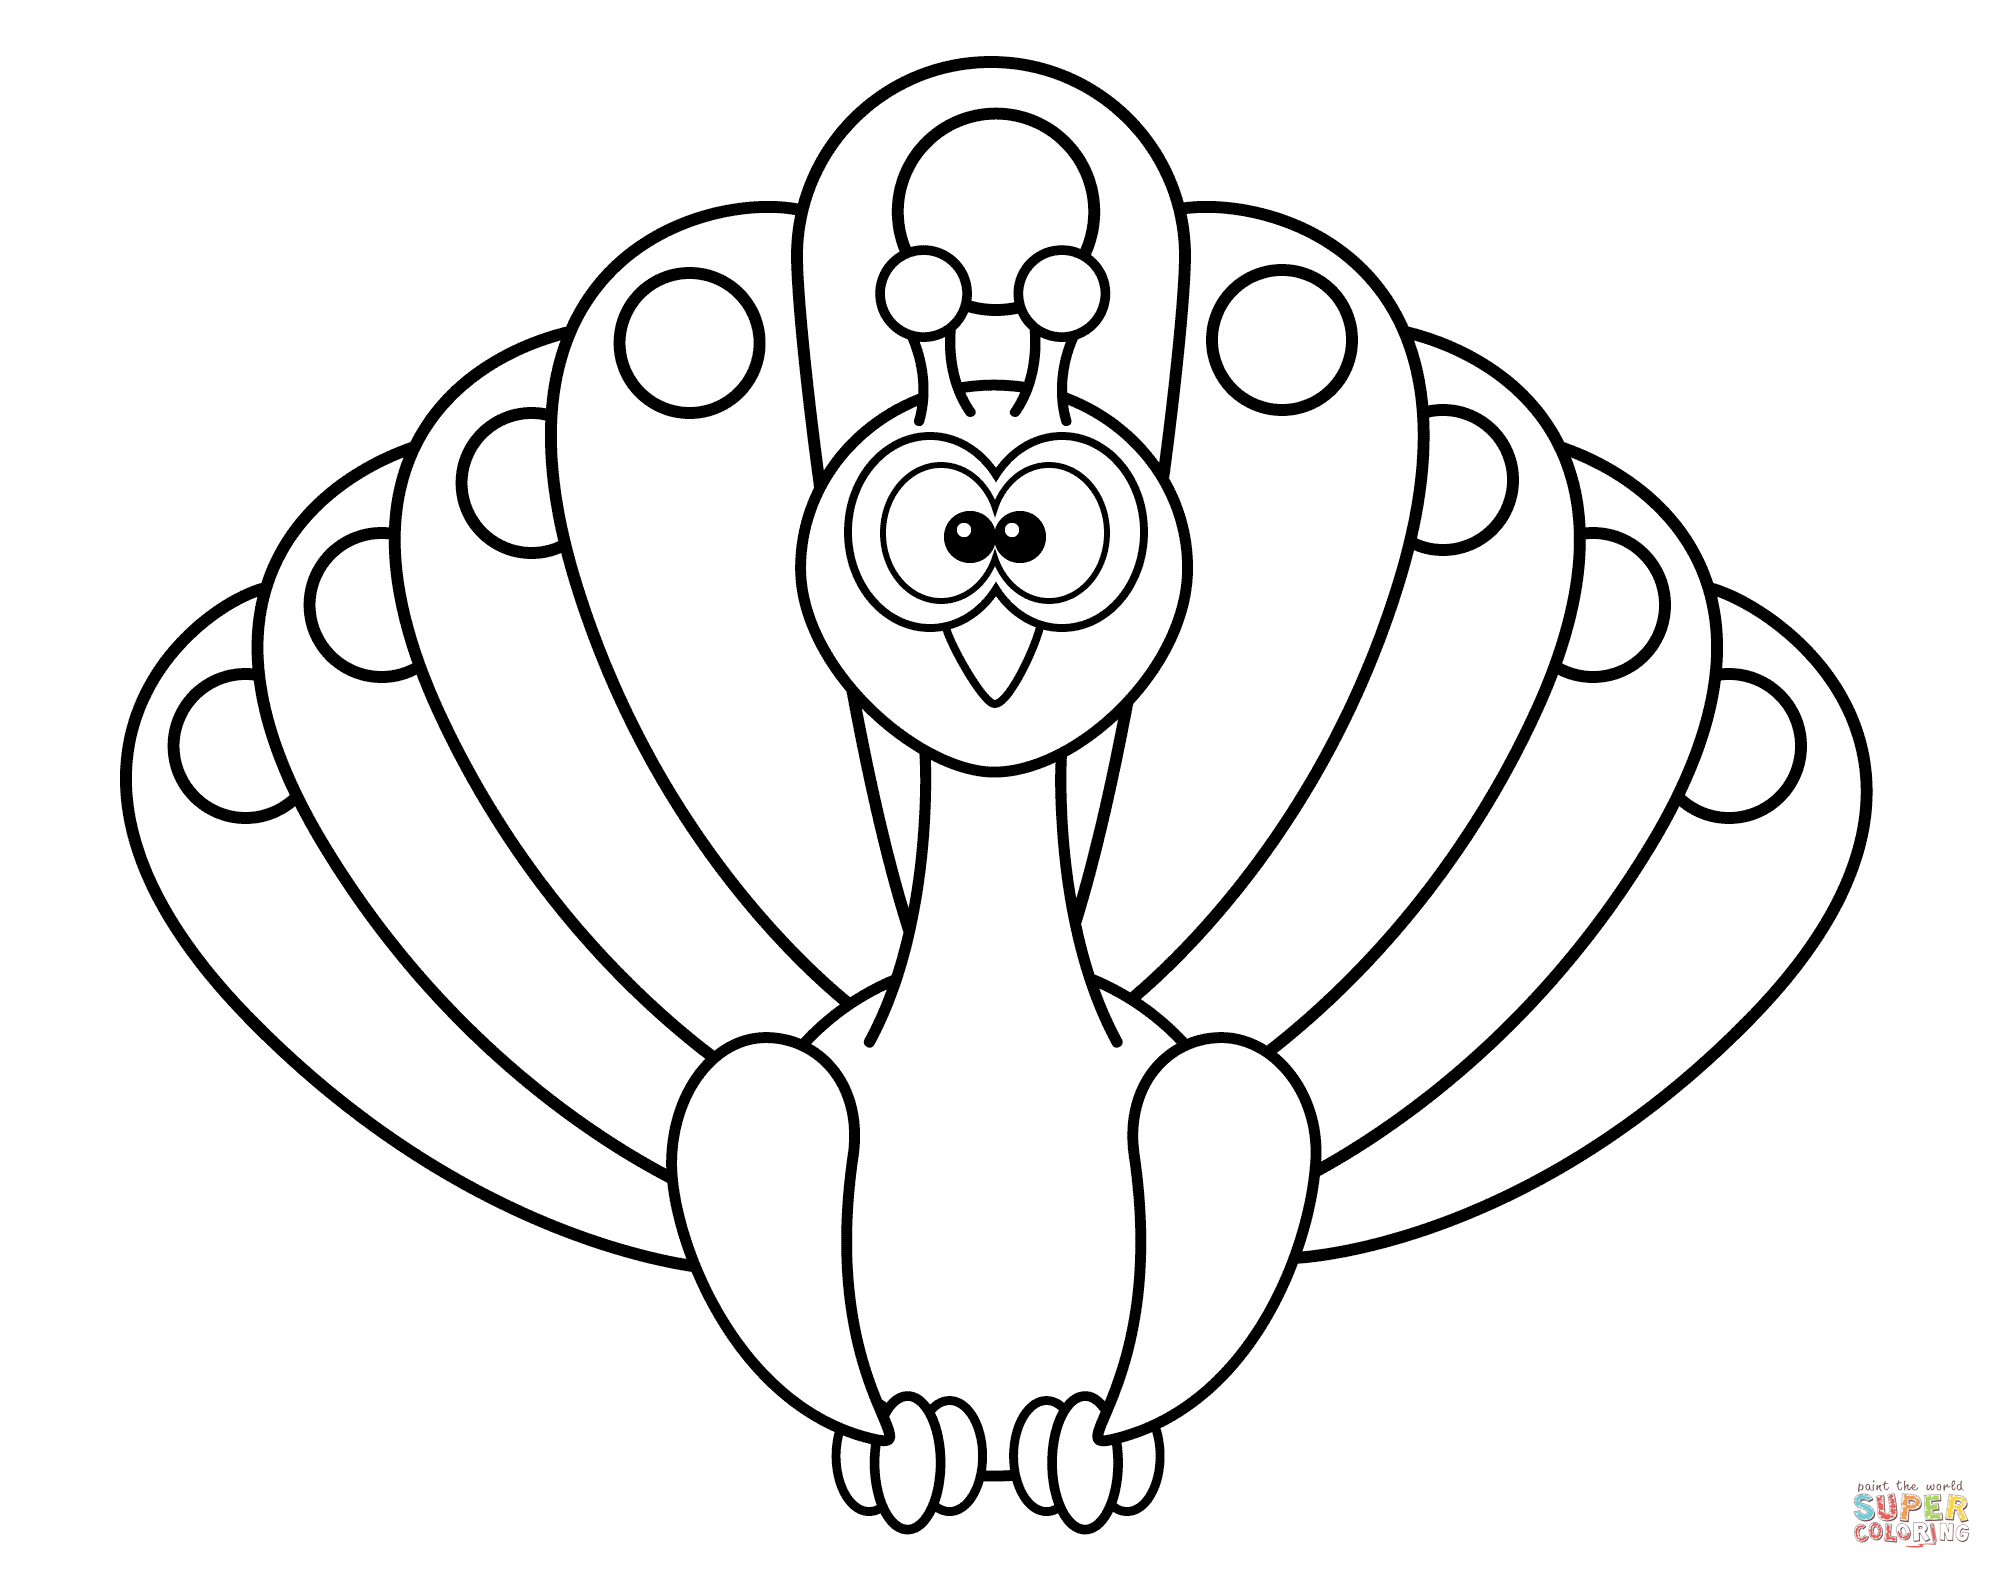 colouring pictures of peacock peacocks coloring pages download and print for free of peacock pictures colouring